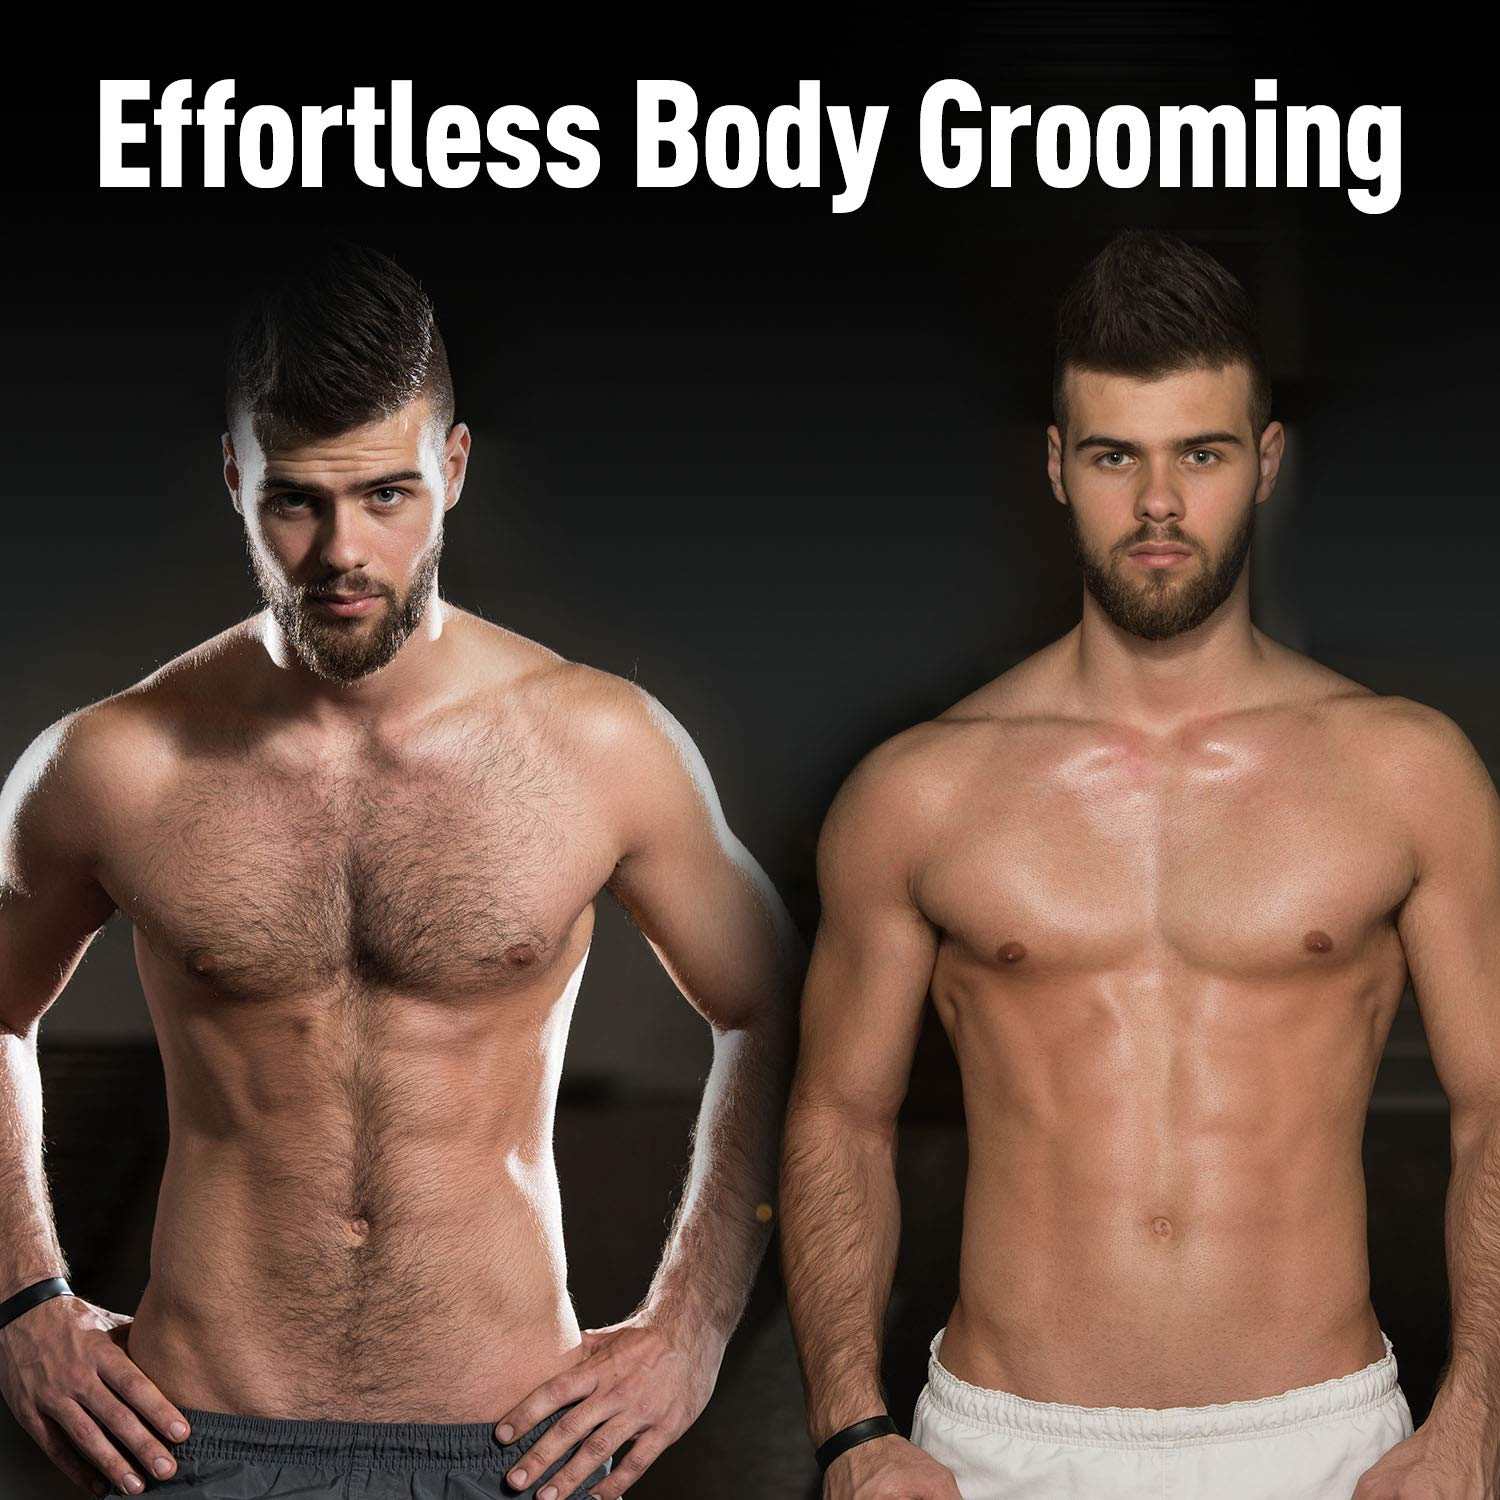 Panasonic Cordless Electric Body Hair Trimmer with Waterproof Design, ER-GK60-S by Panasonic (Image #8)